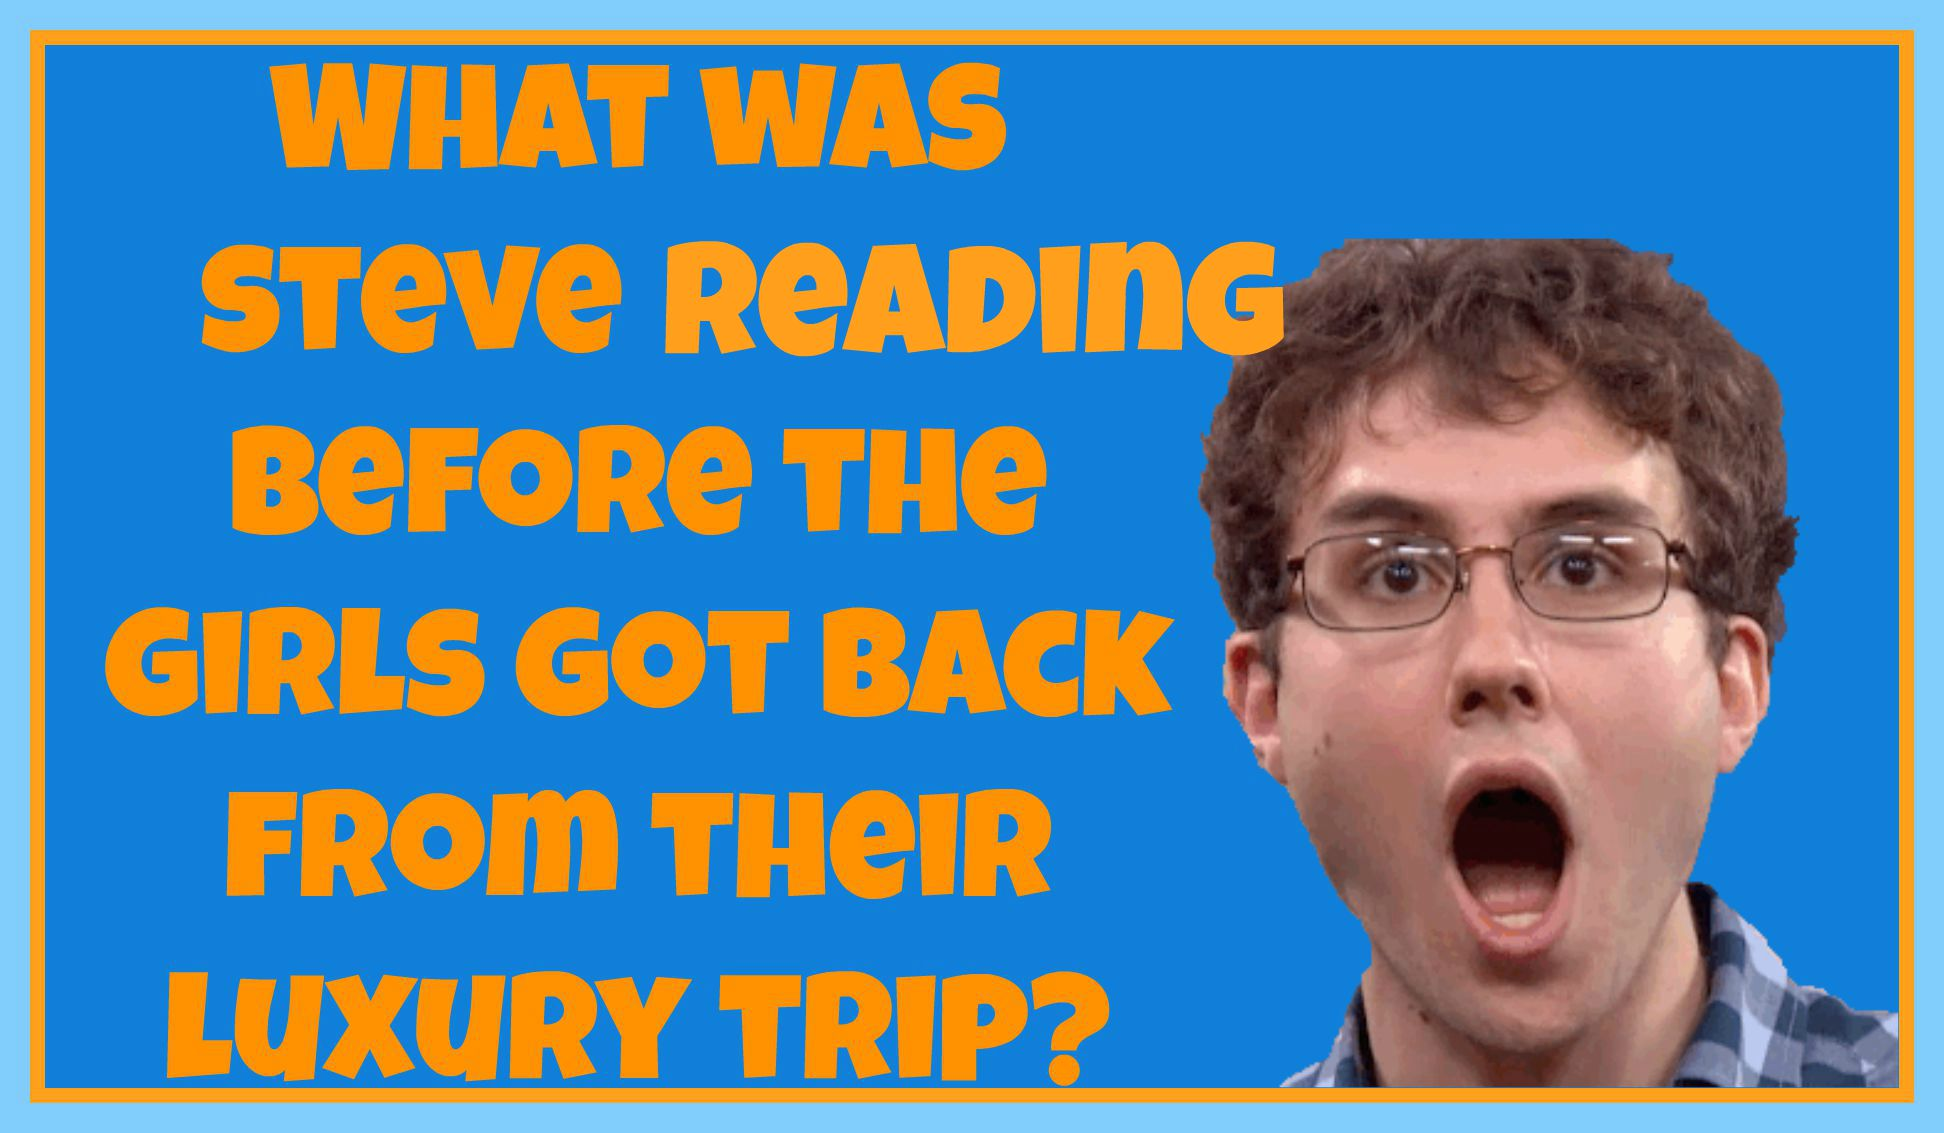 What was Steve reading before the girls got back from their luxury trip?